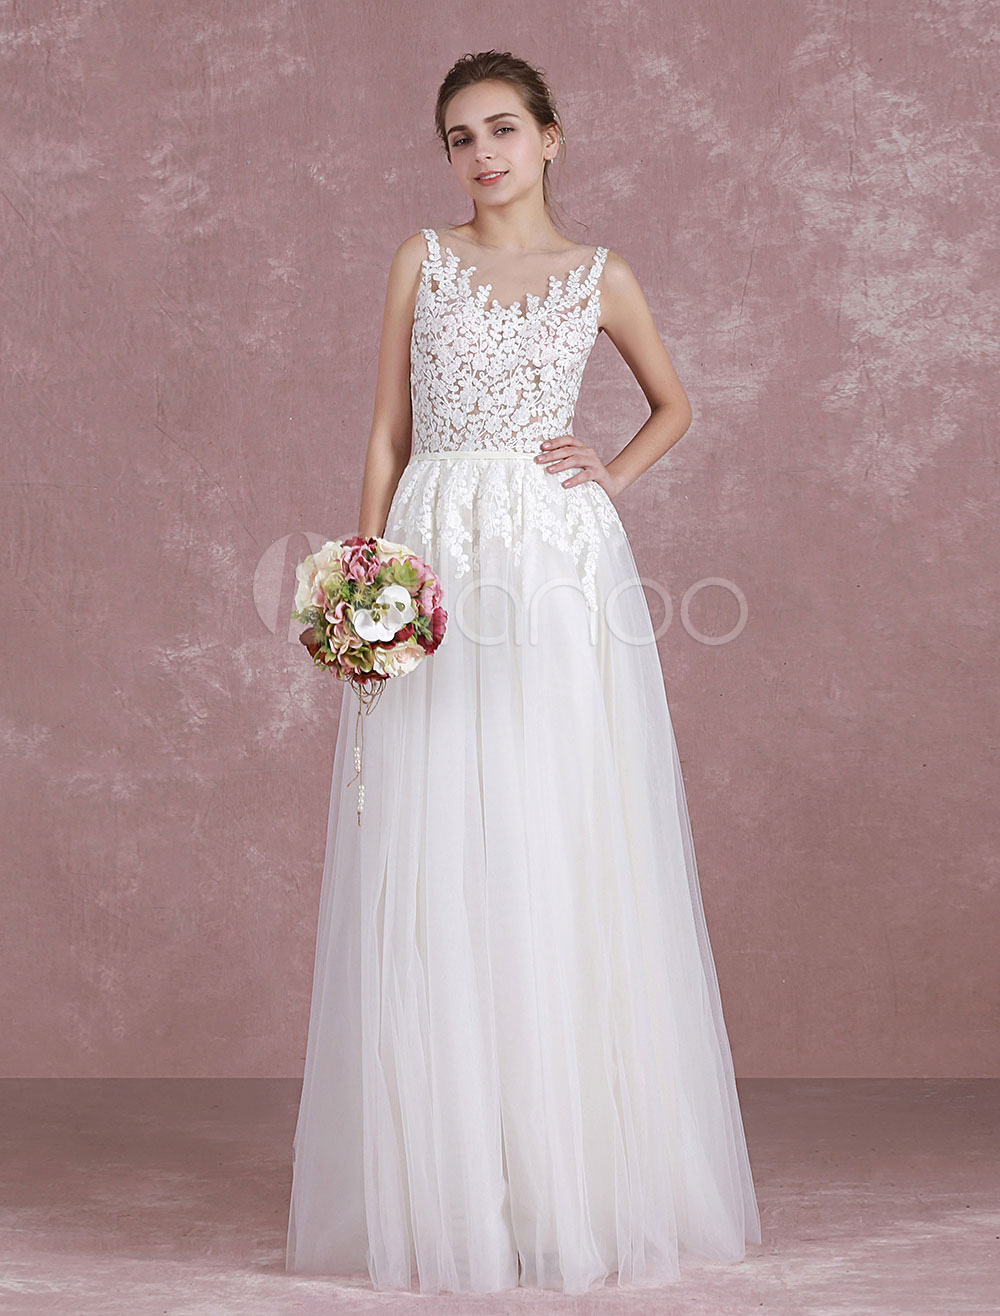 Buy Summer Wedding Dresses 2018 Boho Beach Bridal Dress Illusion Lace Applique Tulle Sleeveless A Line Sash Floor Length Bridal Gown Milanoo for $152.99 in Milanoo store